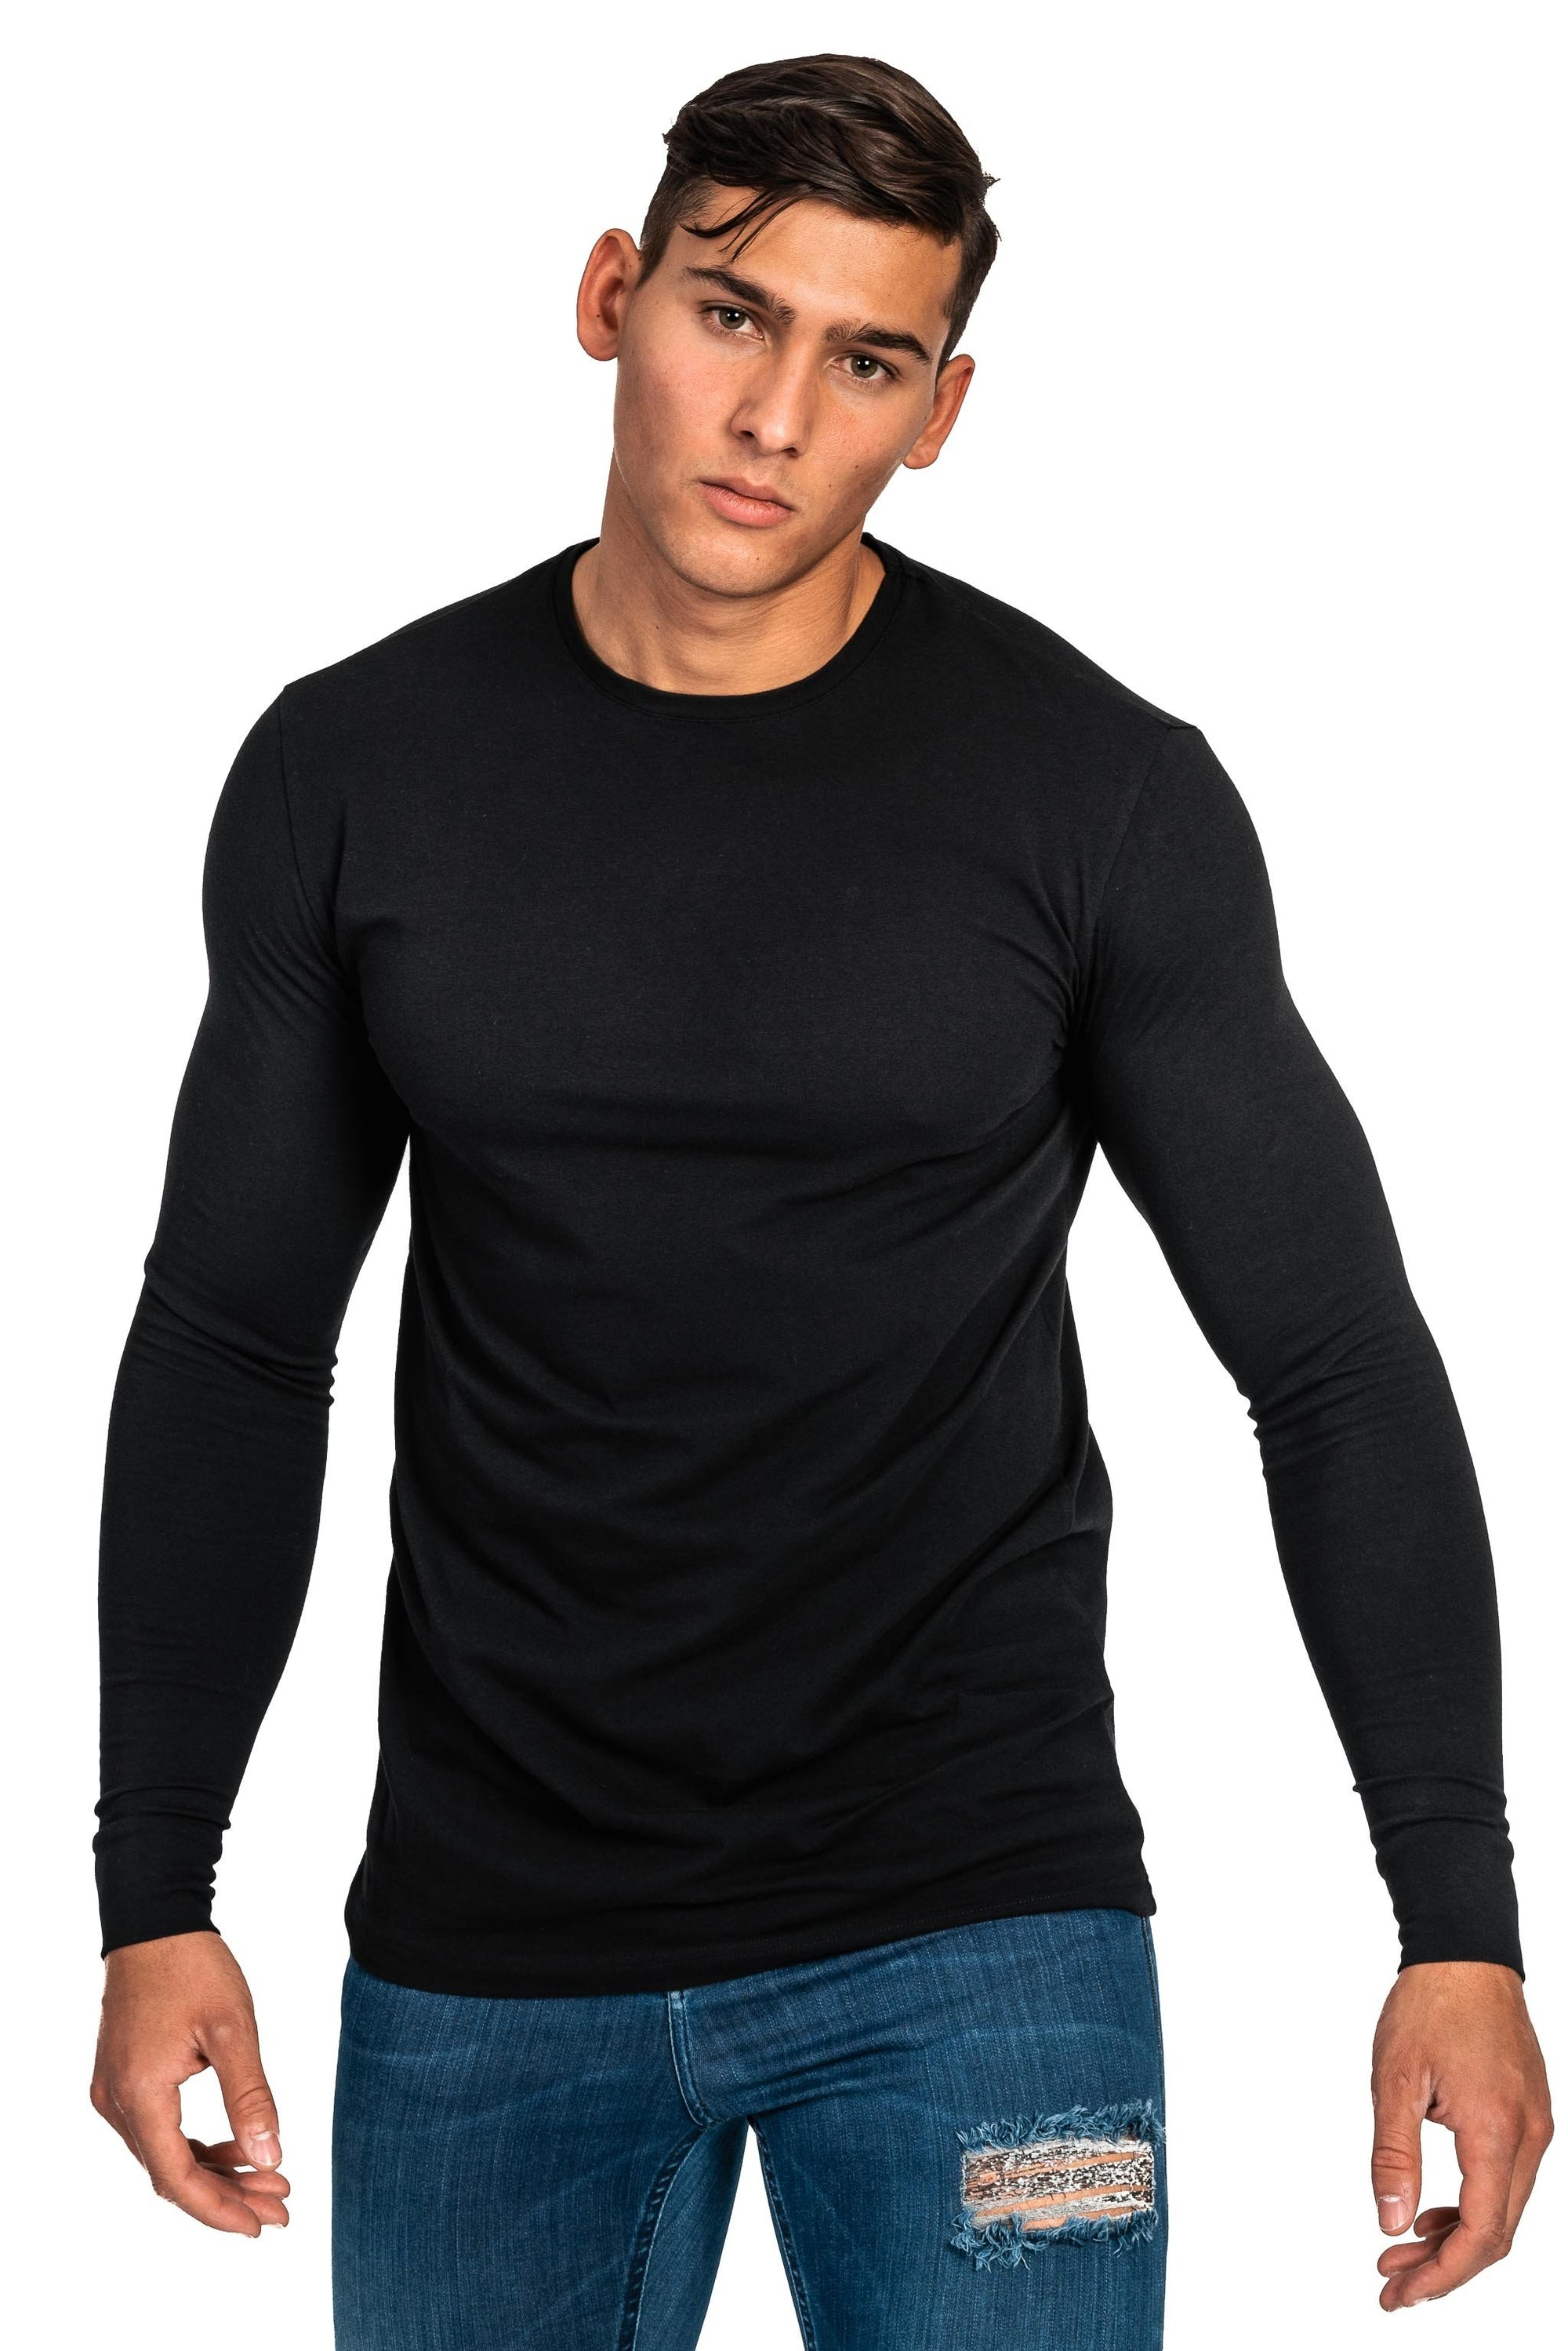 Mens Long Sleeve T Shirt - Black